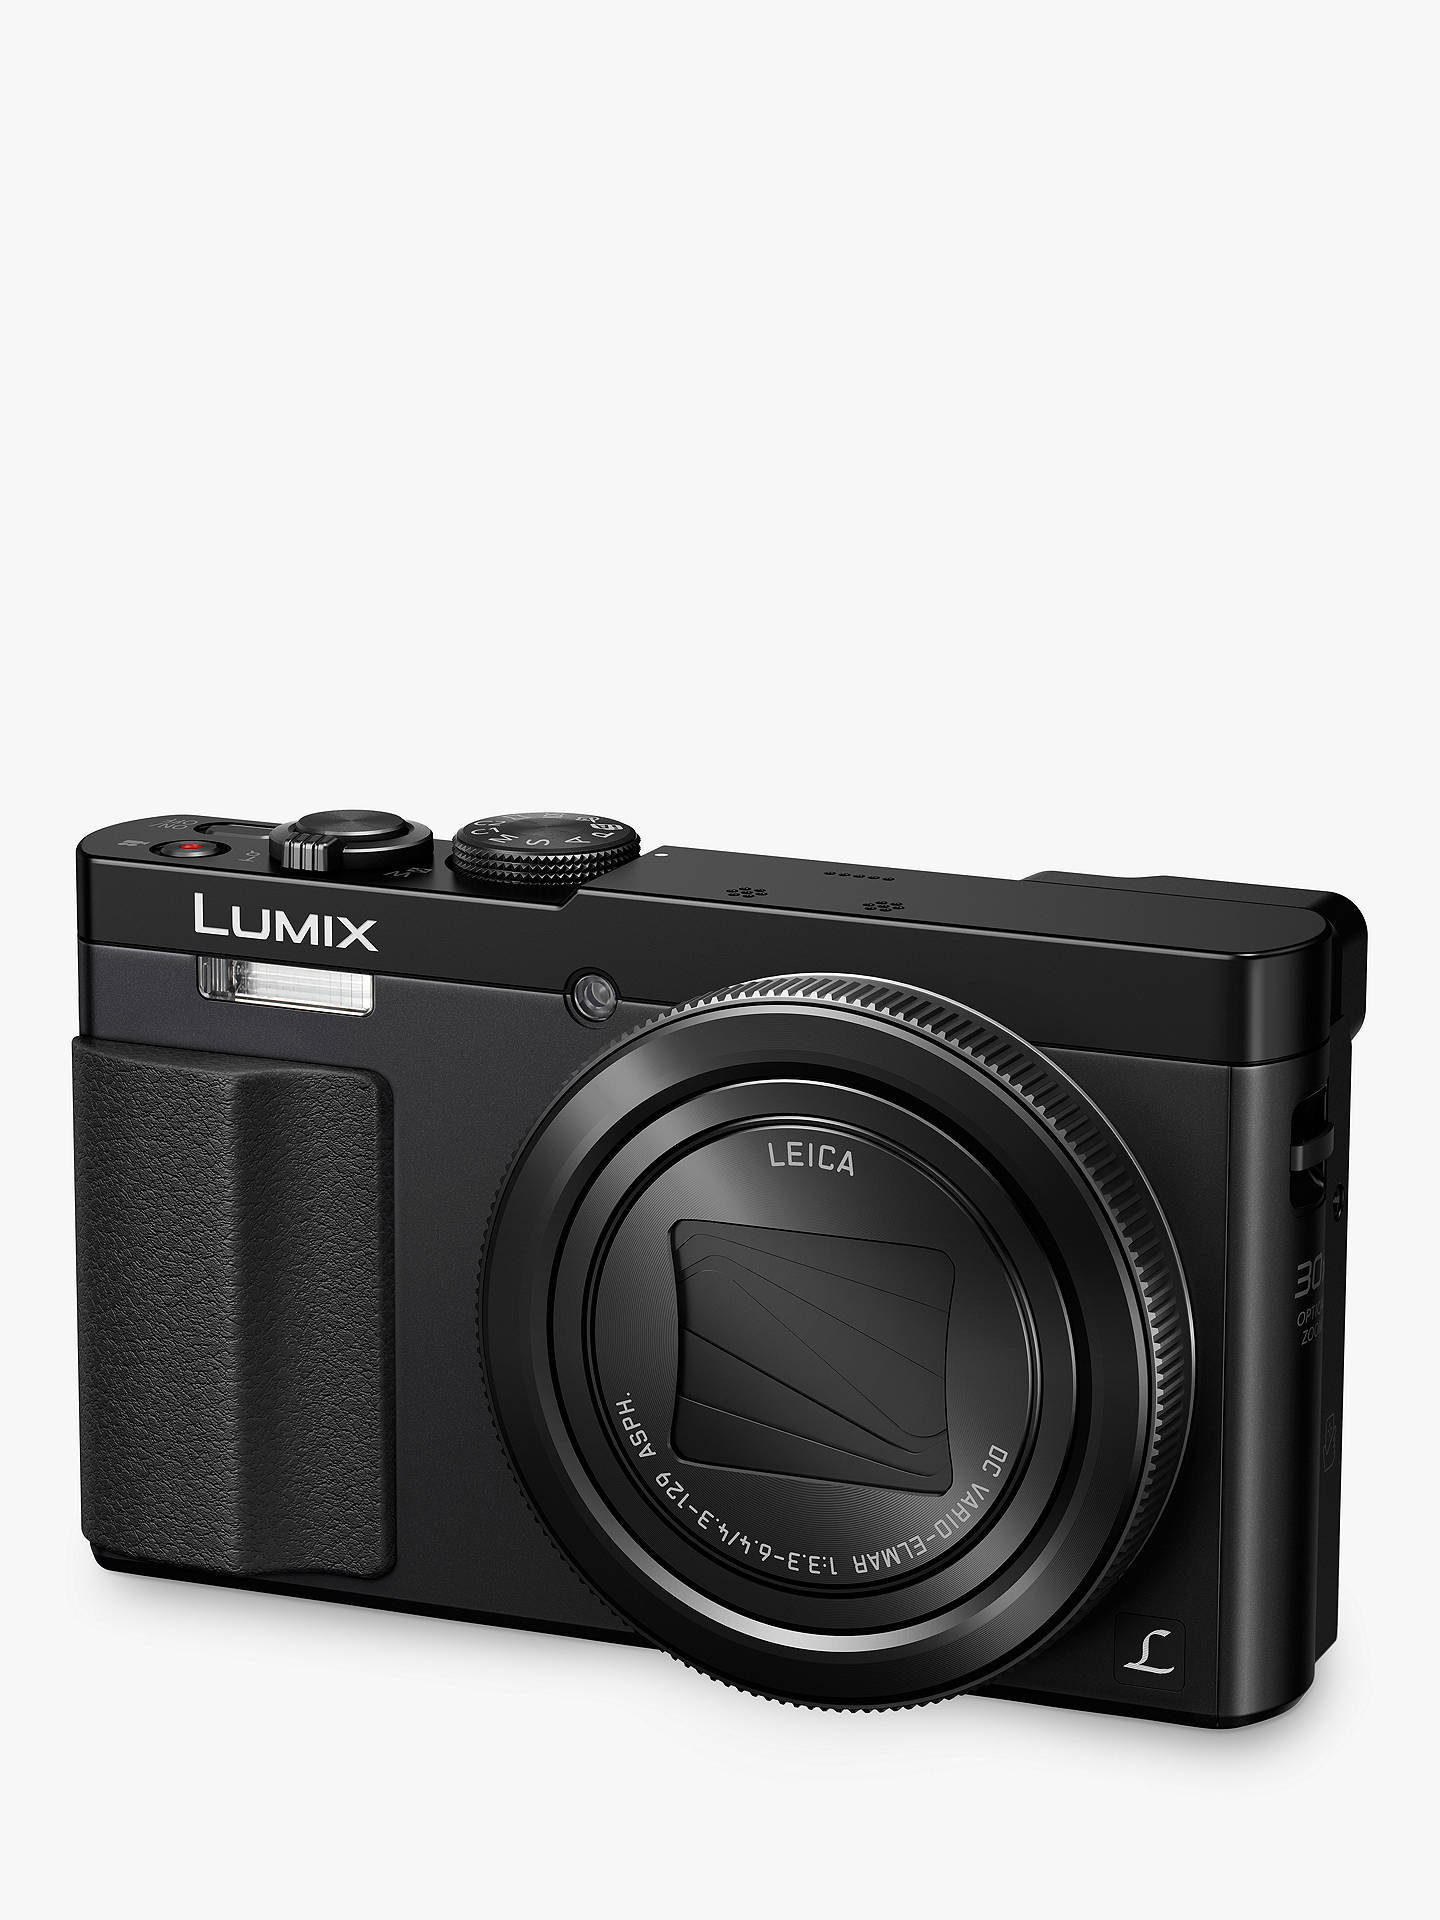 "Buy Panasonic Lumix DMC-TZ70 Digital Camera HD 1080p, 12.1MP, 30x Optical Zoom, NFC, Wi-Fi, Manual Control Ring, EVF, 3"" LCD Screen, Black Online at johnlewis.com"